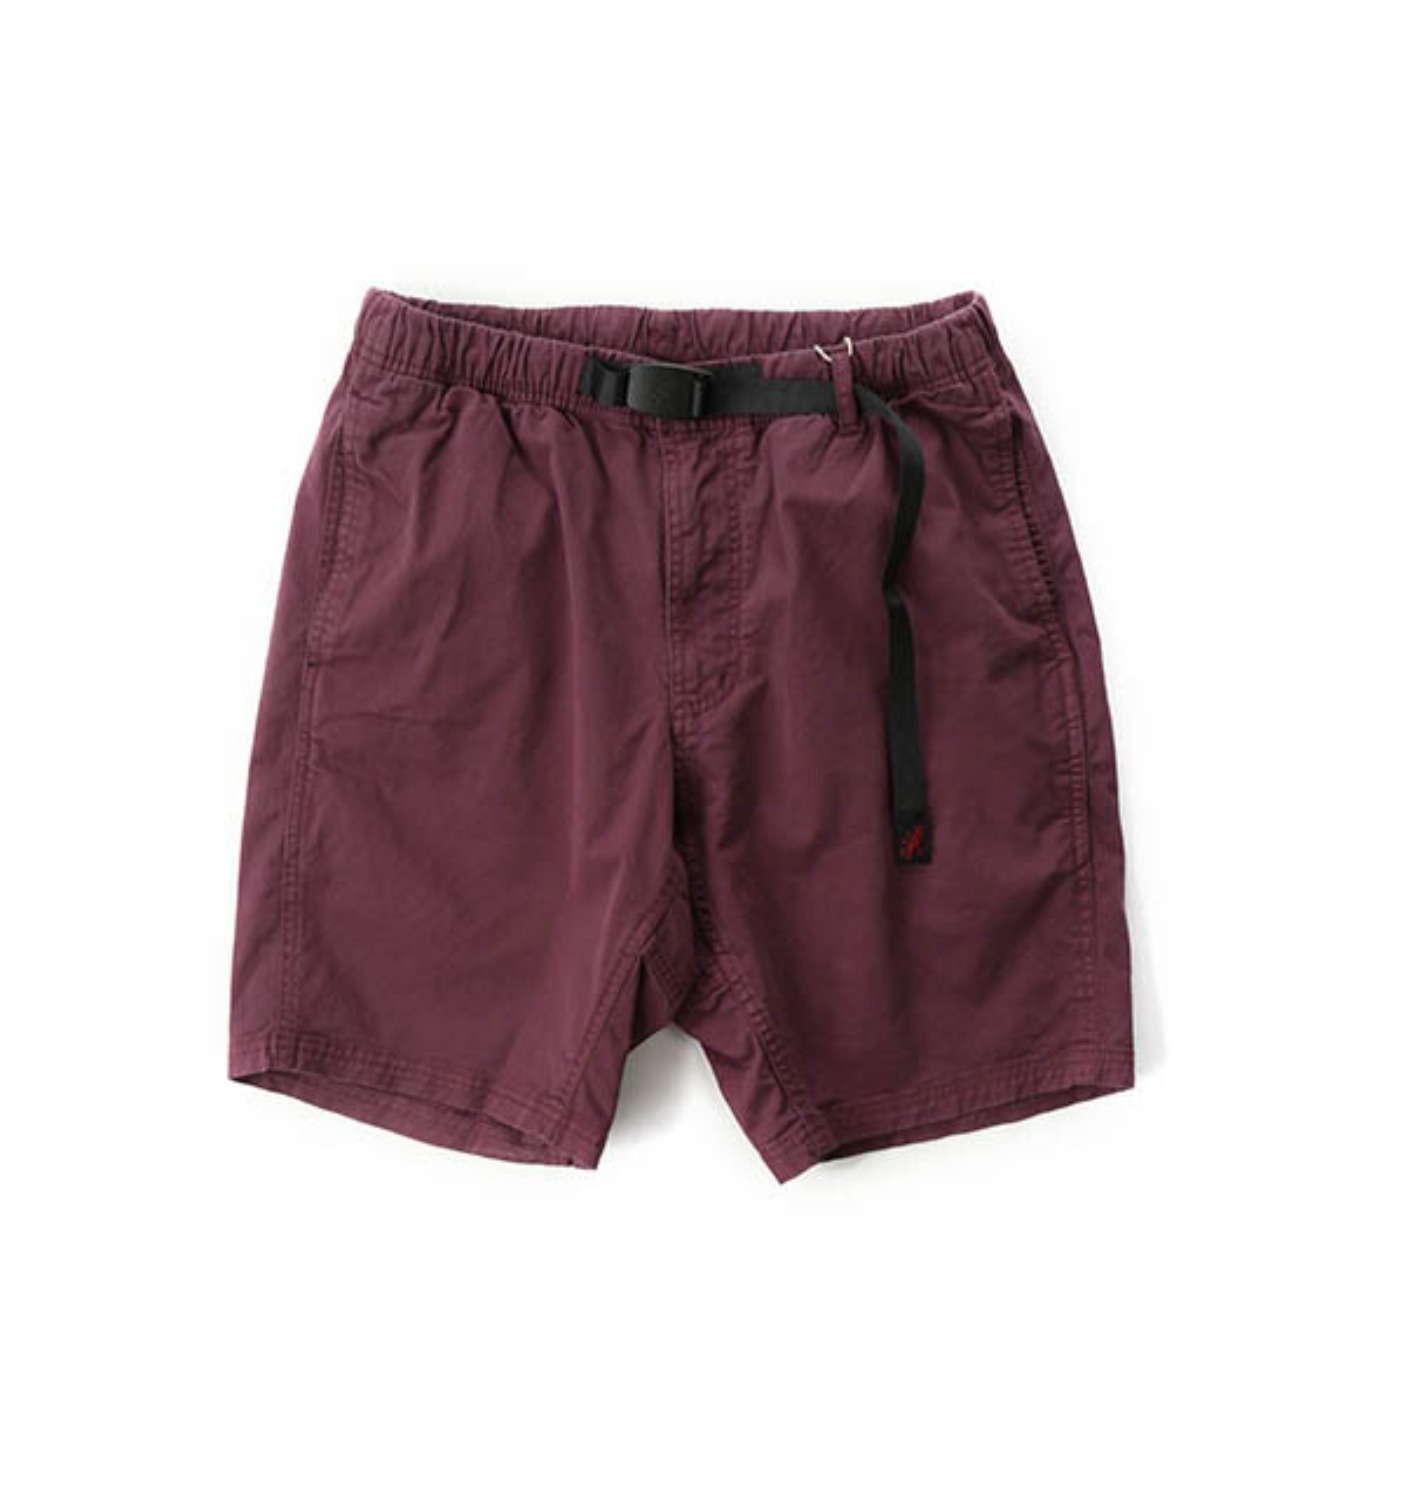 NN-SHORTS PURPLE